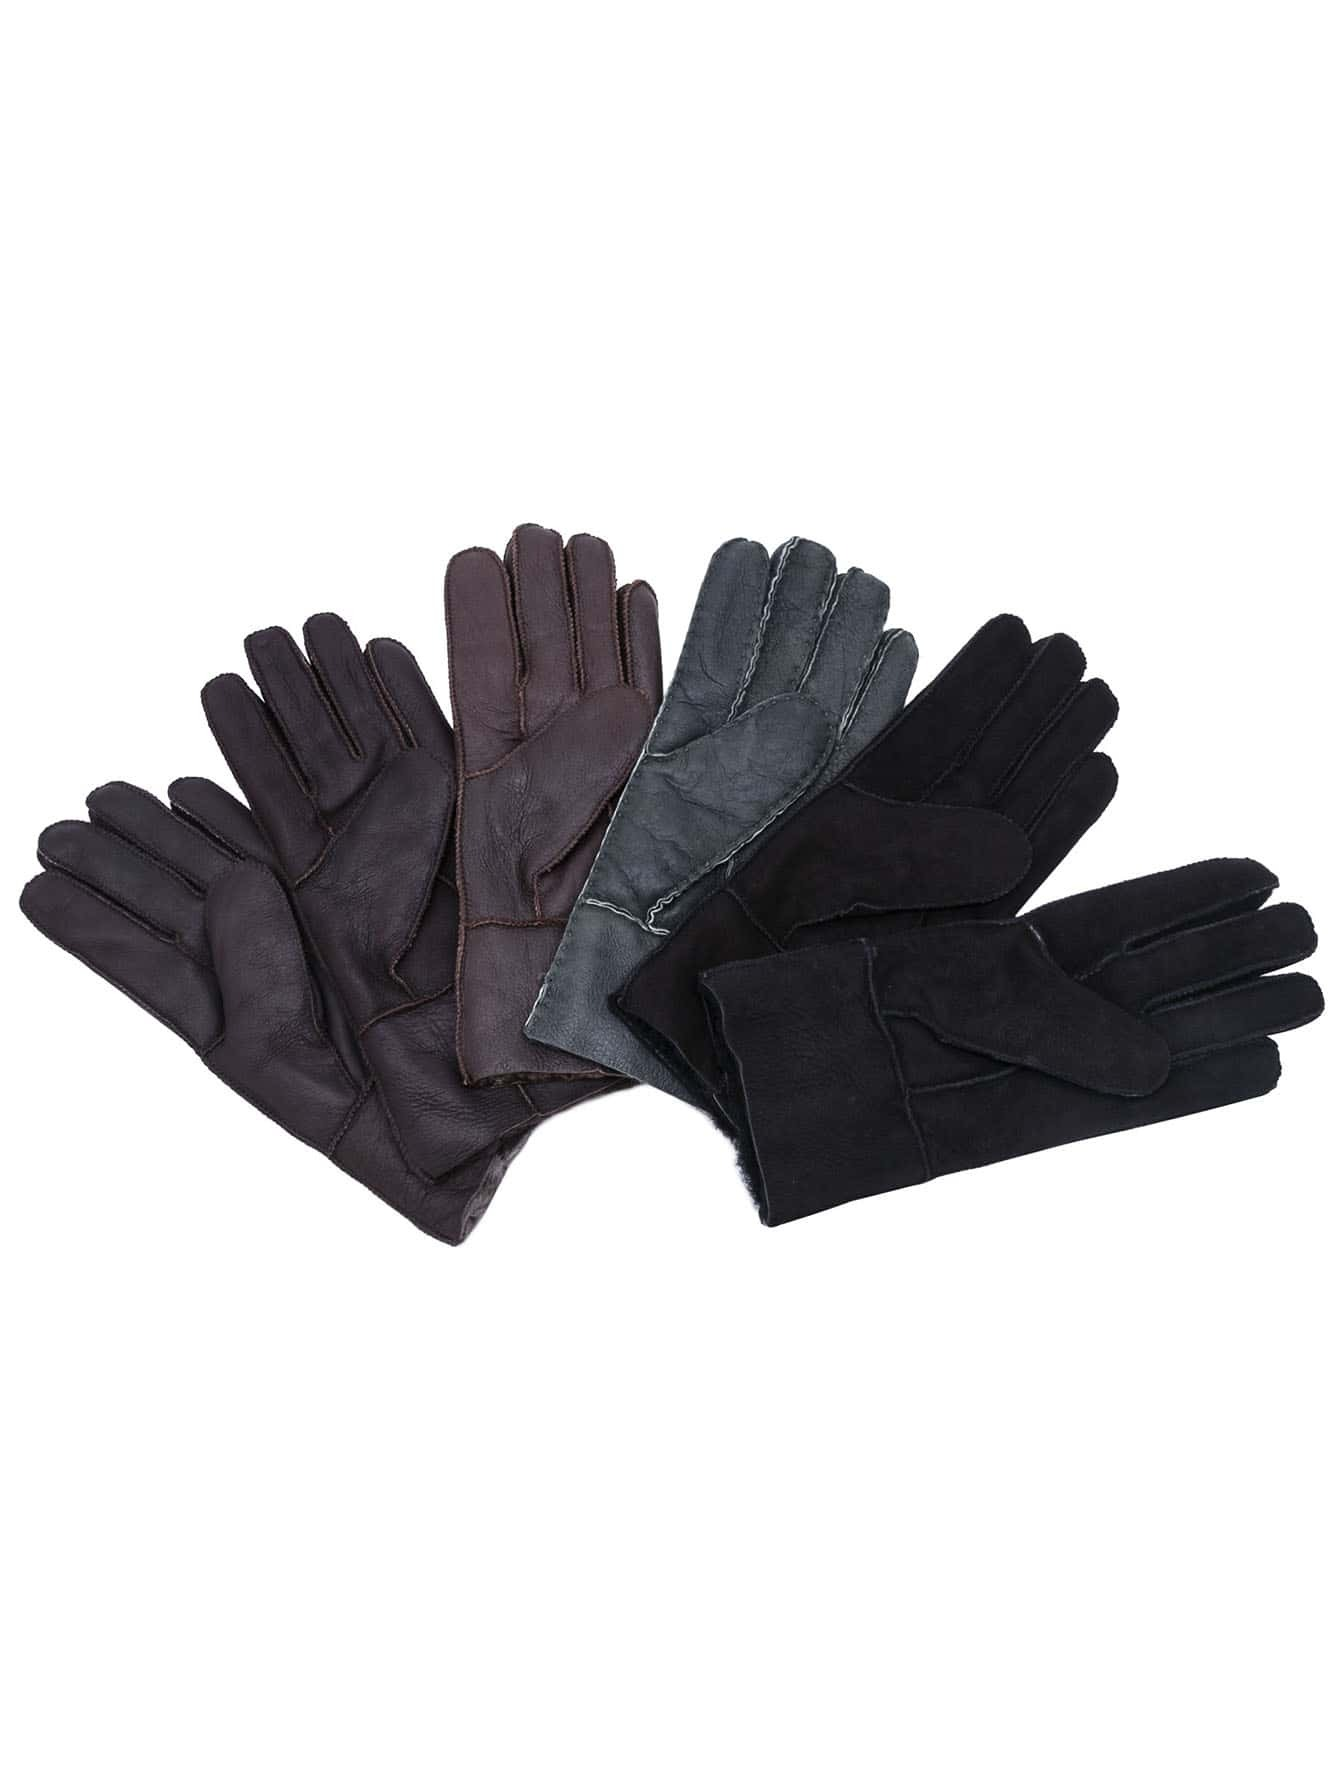 Random Color Fluffy Lining Leather Thermal GlovesRandom Color Fluffy Lining Leather Thermal Gloves<br><br>color: None<br>size: one-size